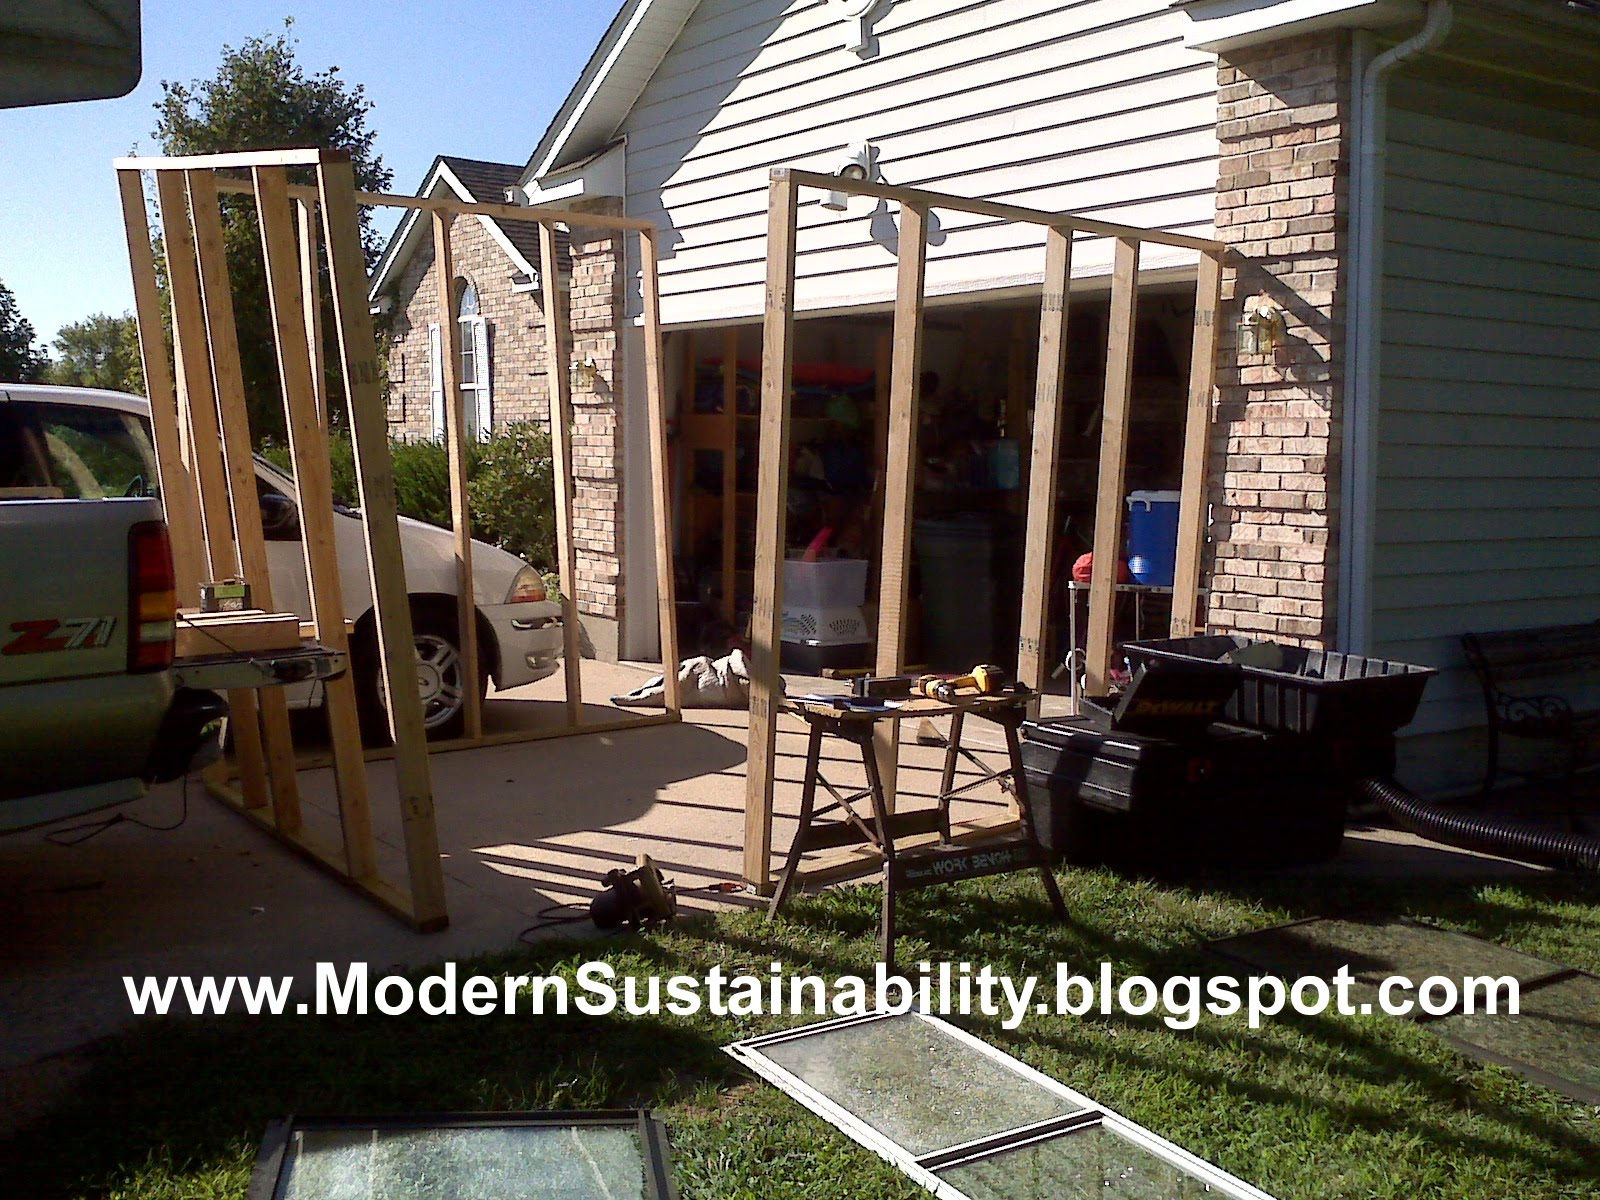 modern sustainability old fashioned methods how to build a tree